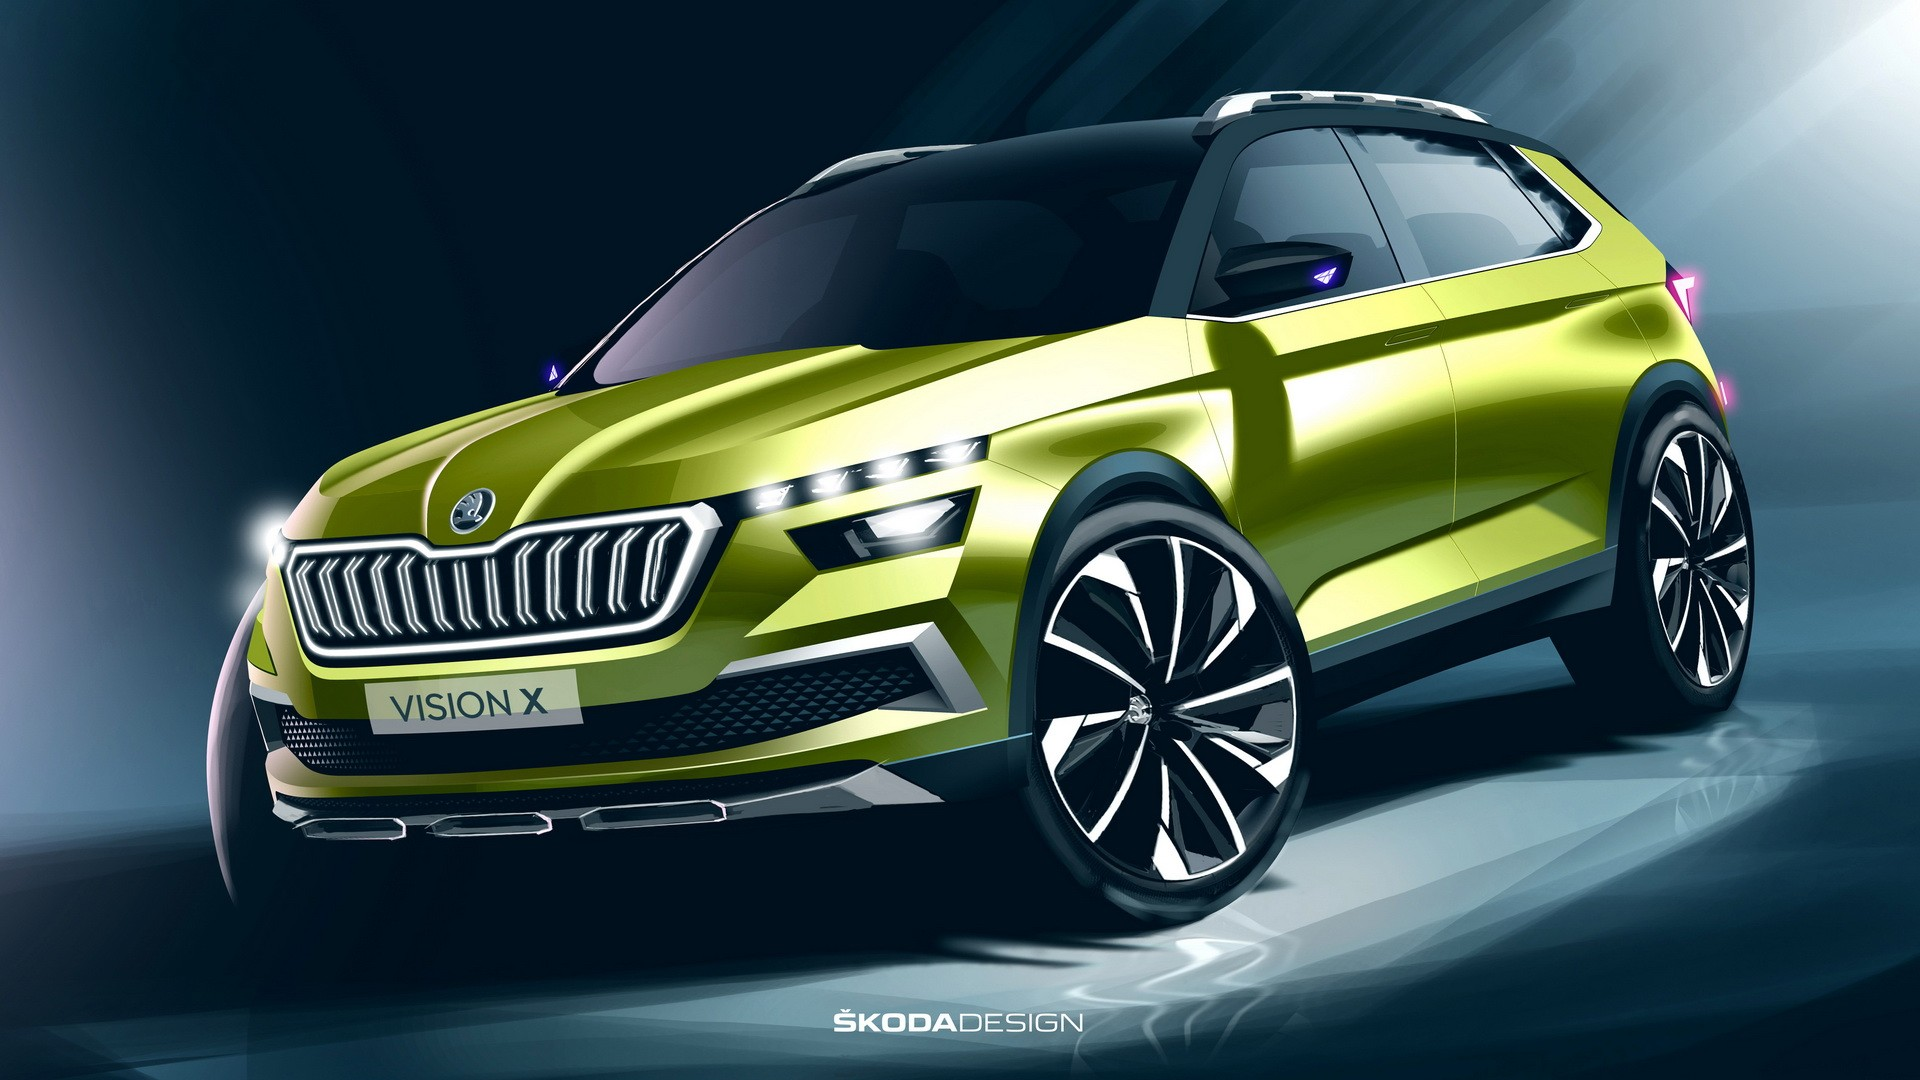 Skoda Vision X Concept Revealed, Runs on Natural Gas and Electricity - autoevolution